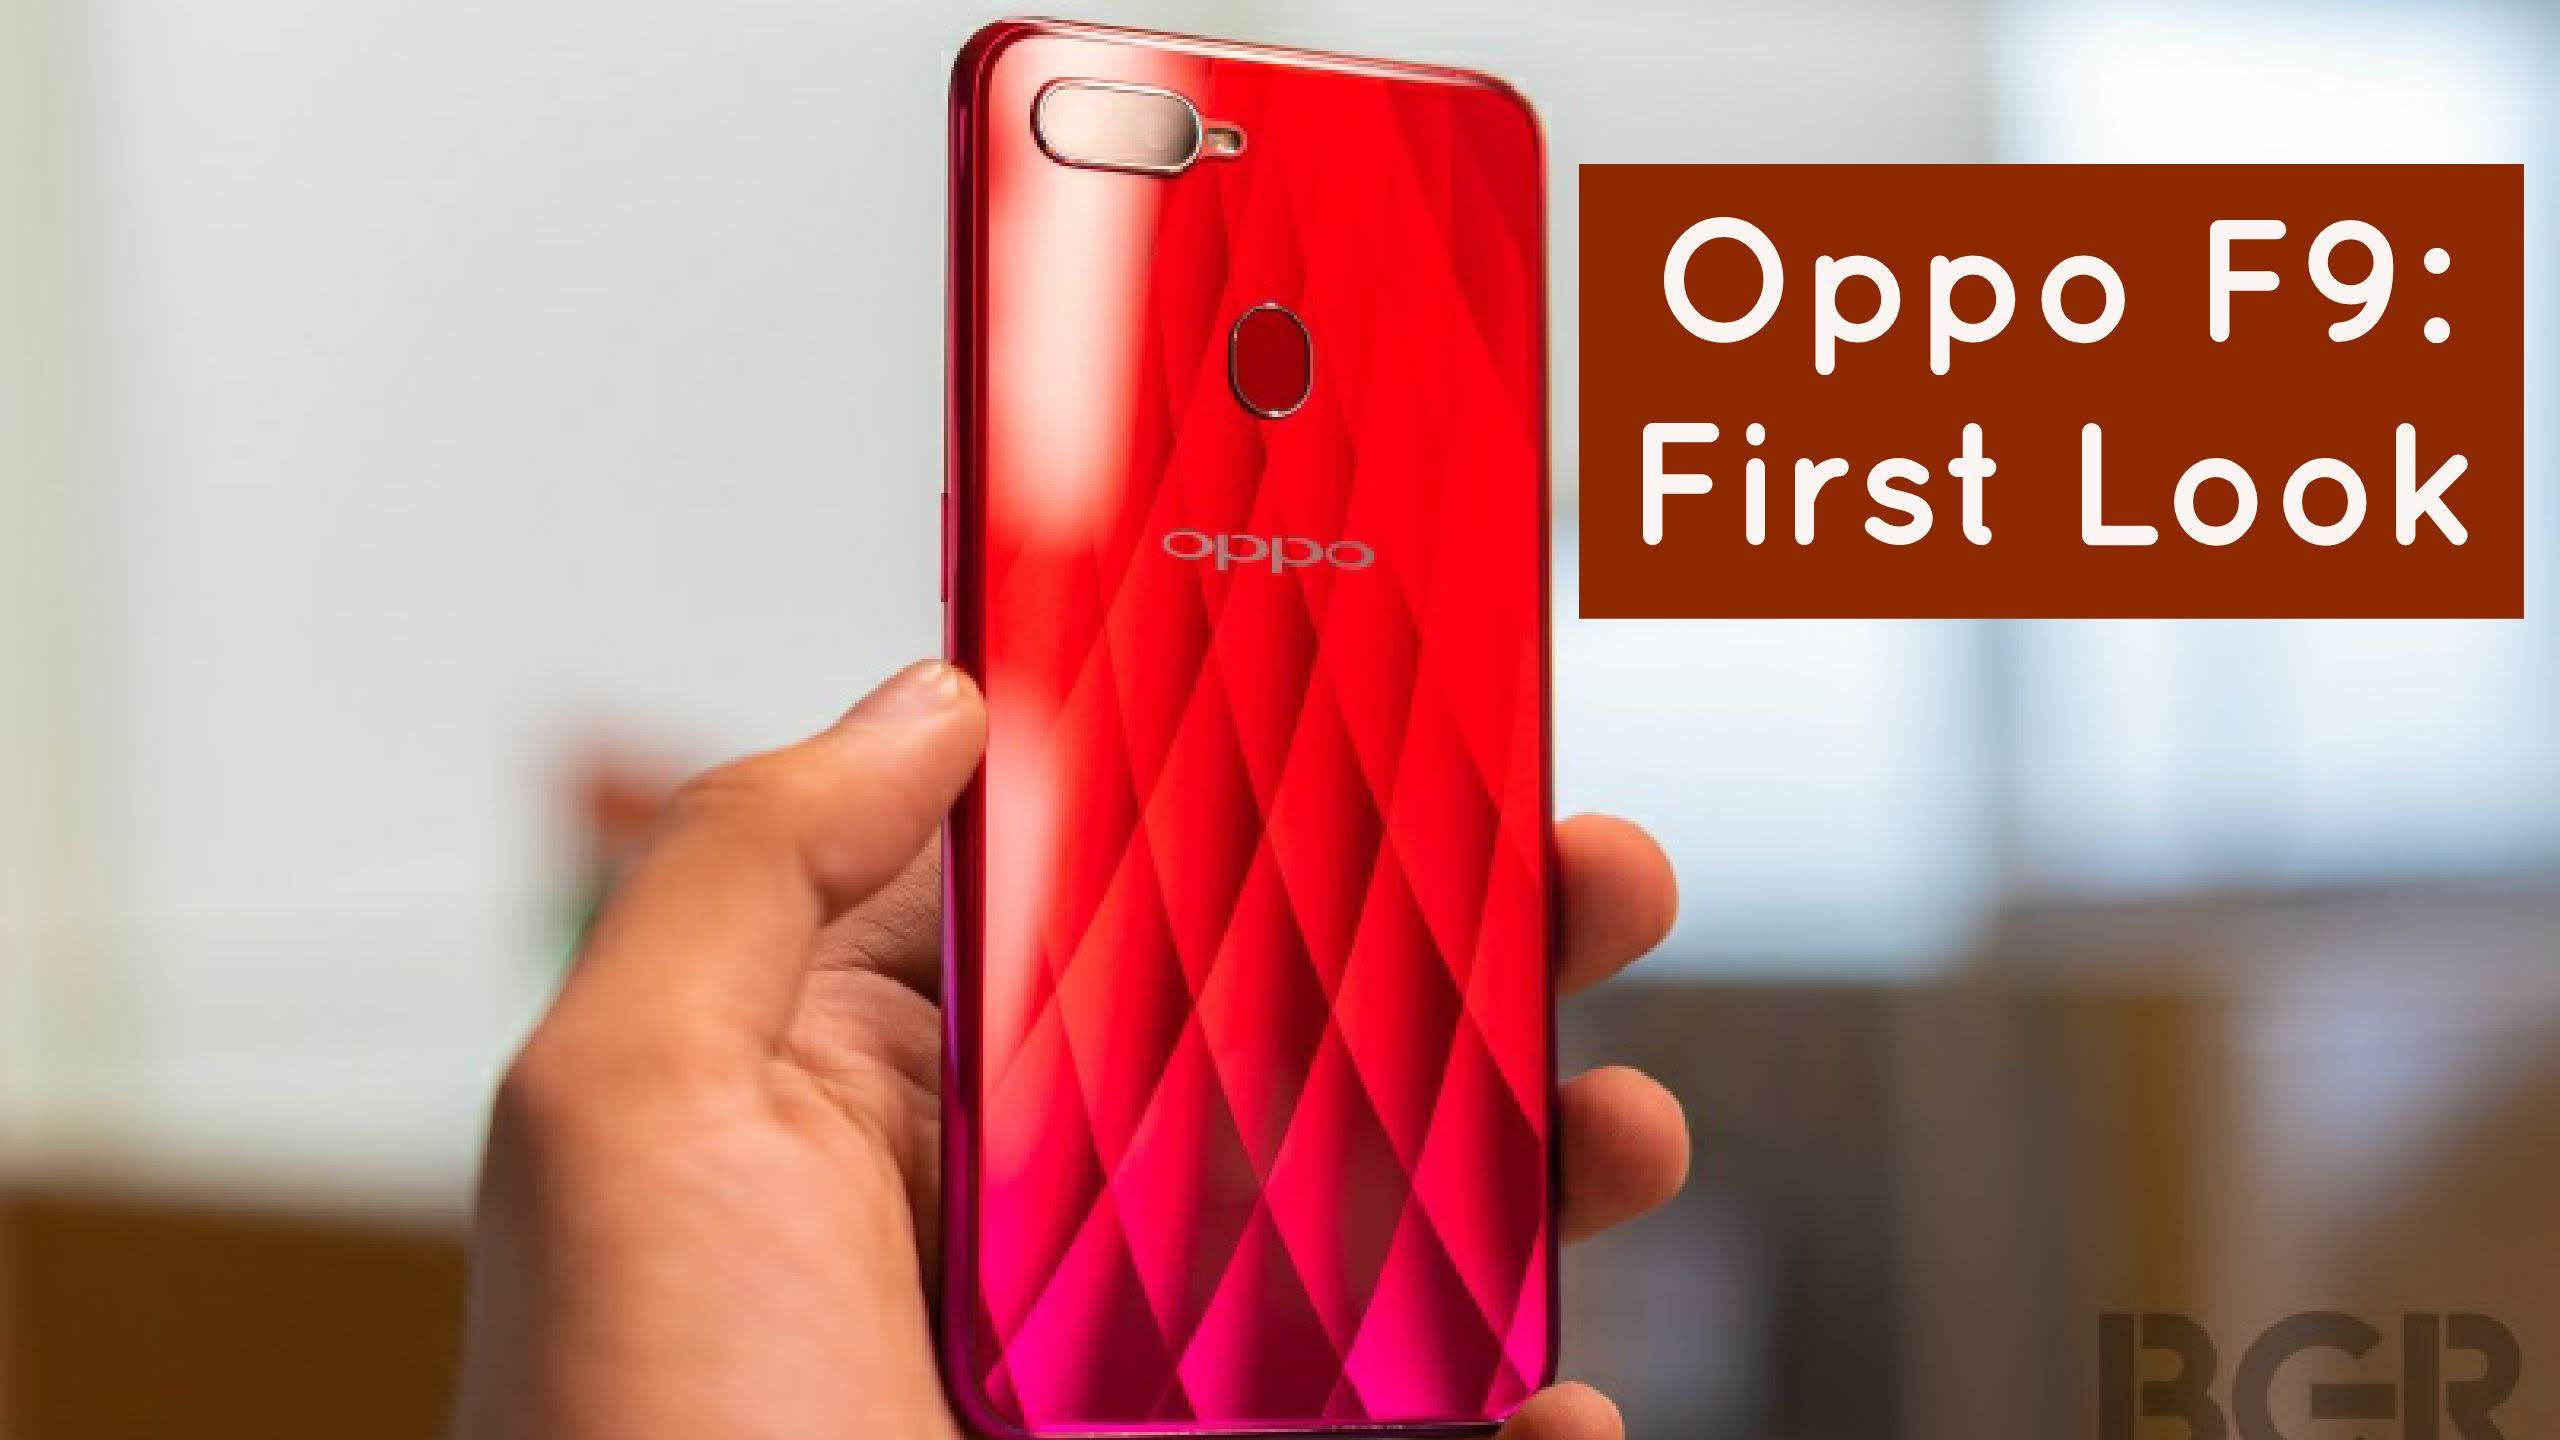 Oppo F9 First Look video cover